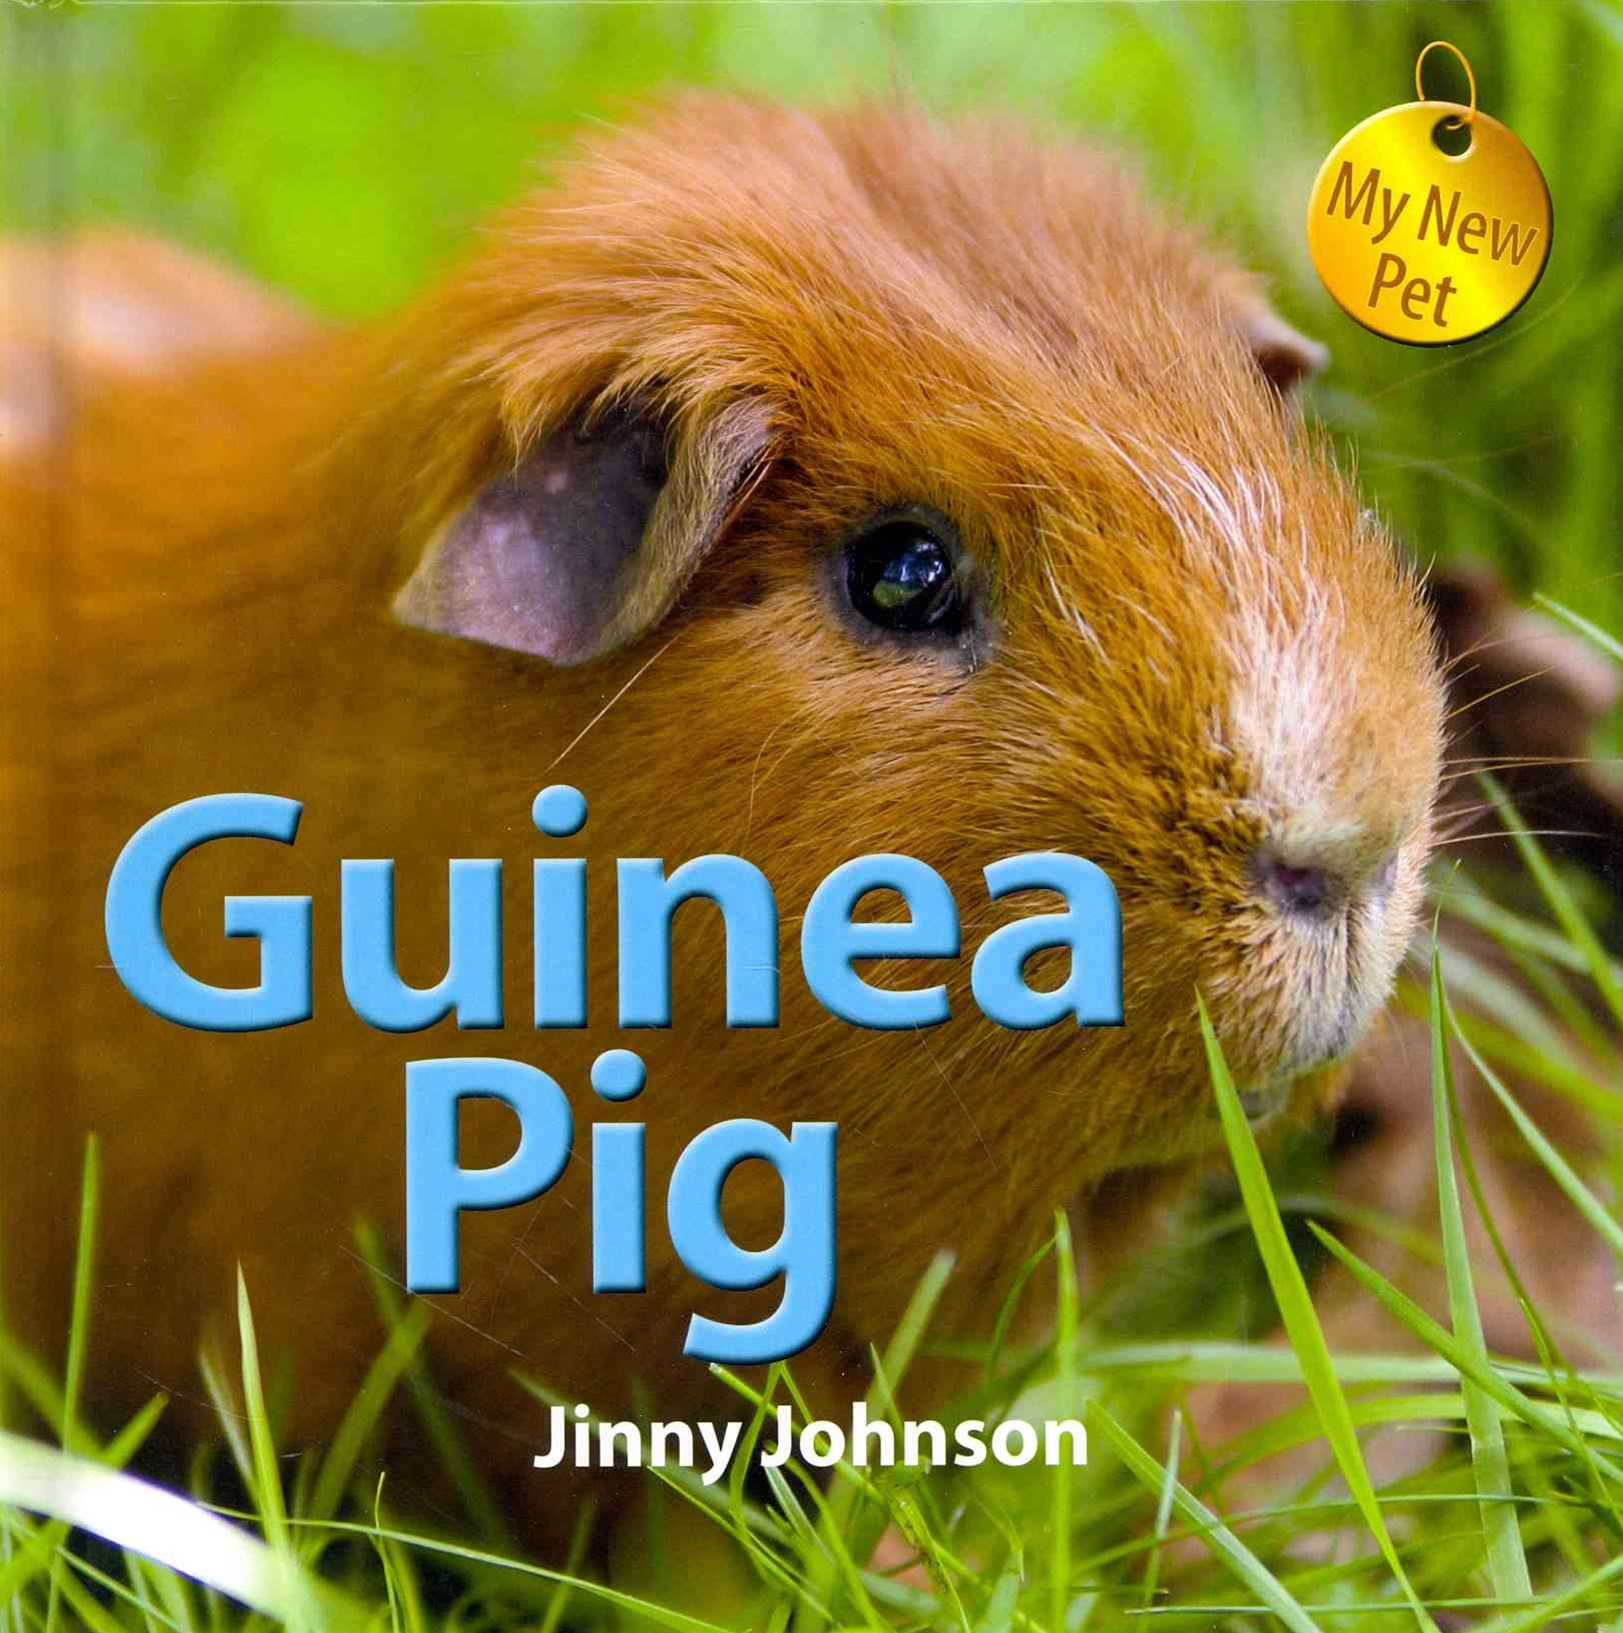 My New Pet: Guinea Pig